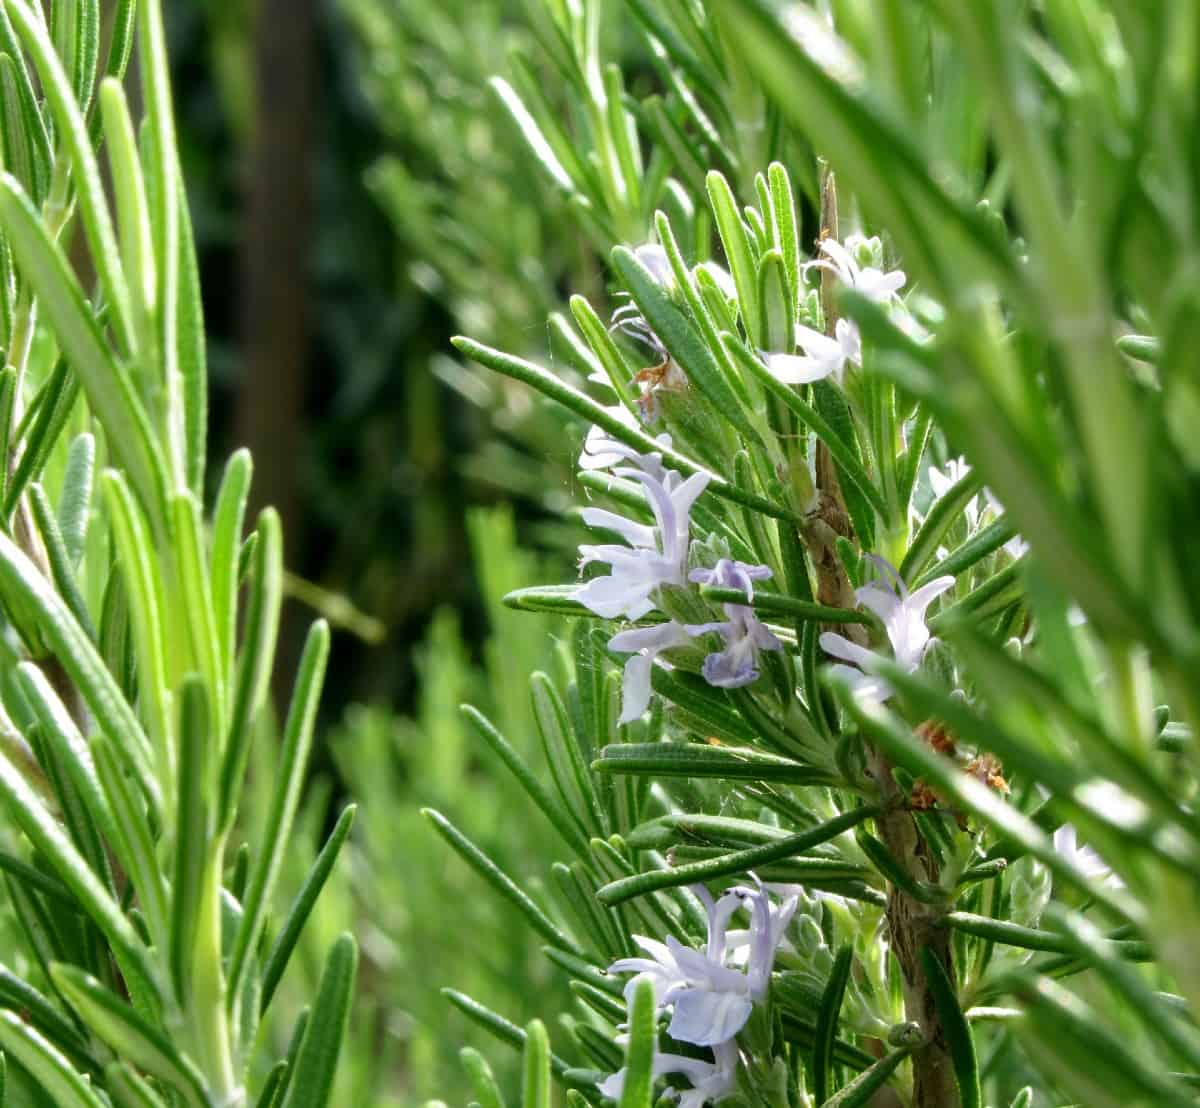 rosemary is a perennial herb that is easy to grow